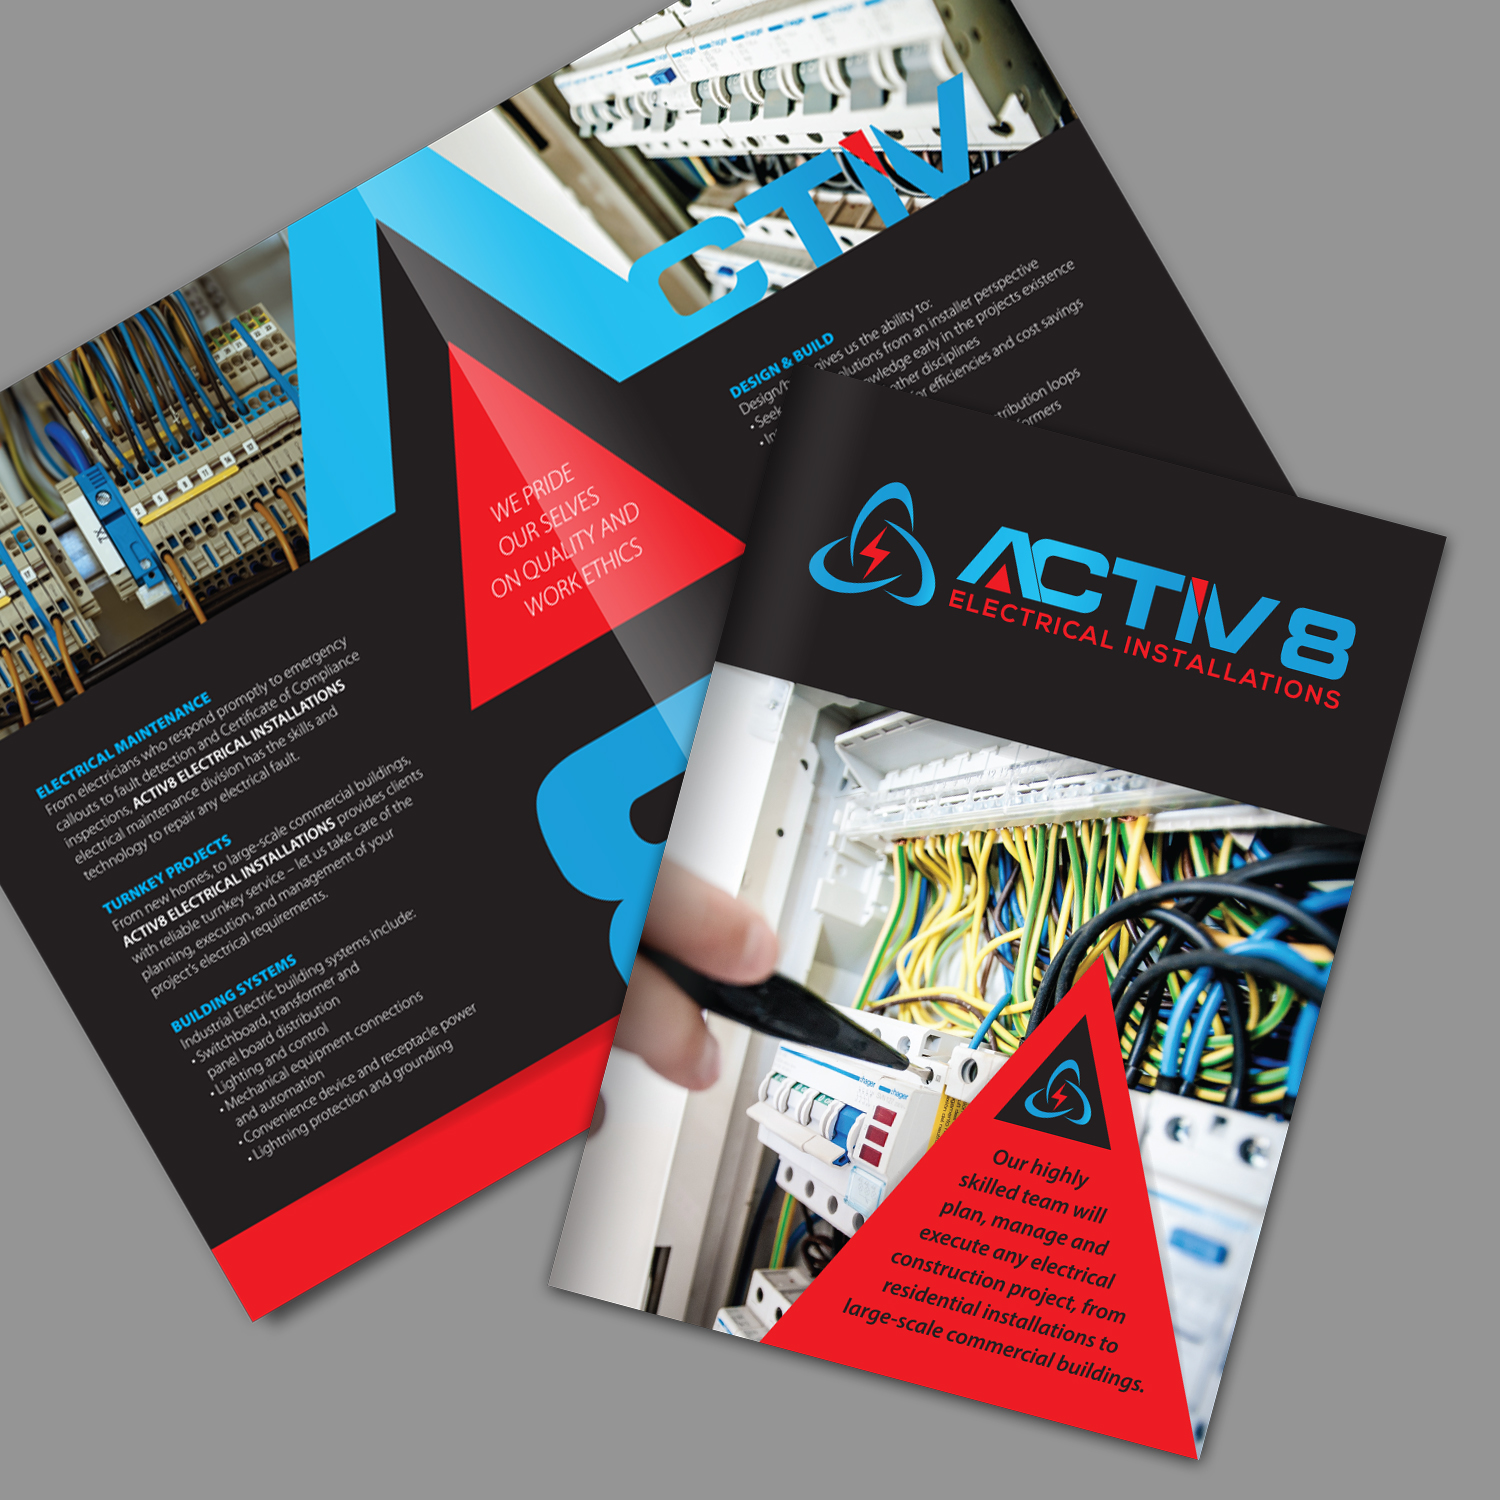 hight resolution of brochure design by ashtree design for activ8 electrical installations design 18964356